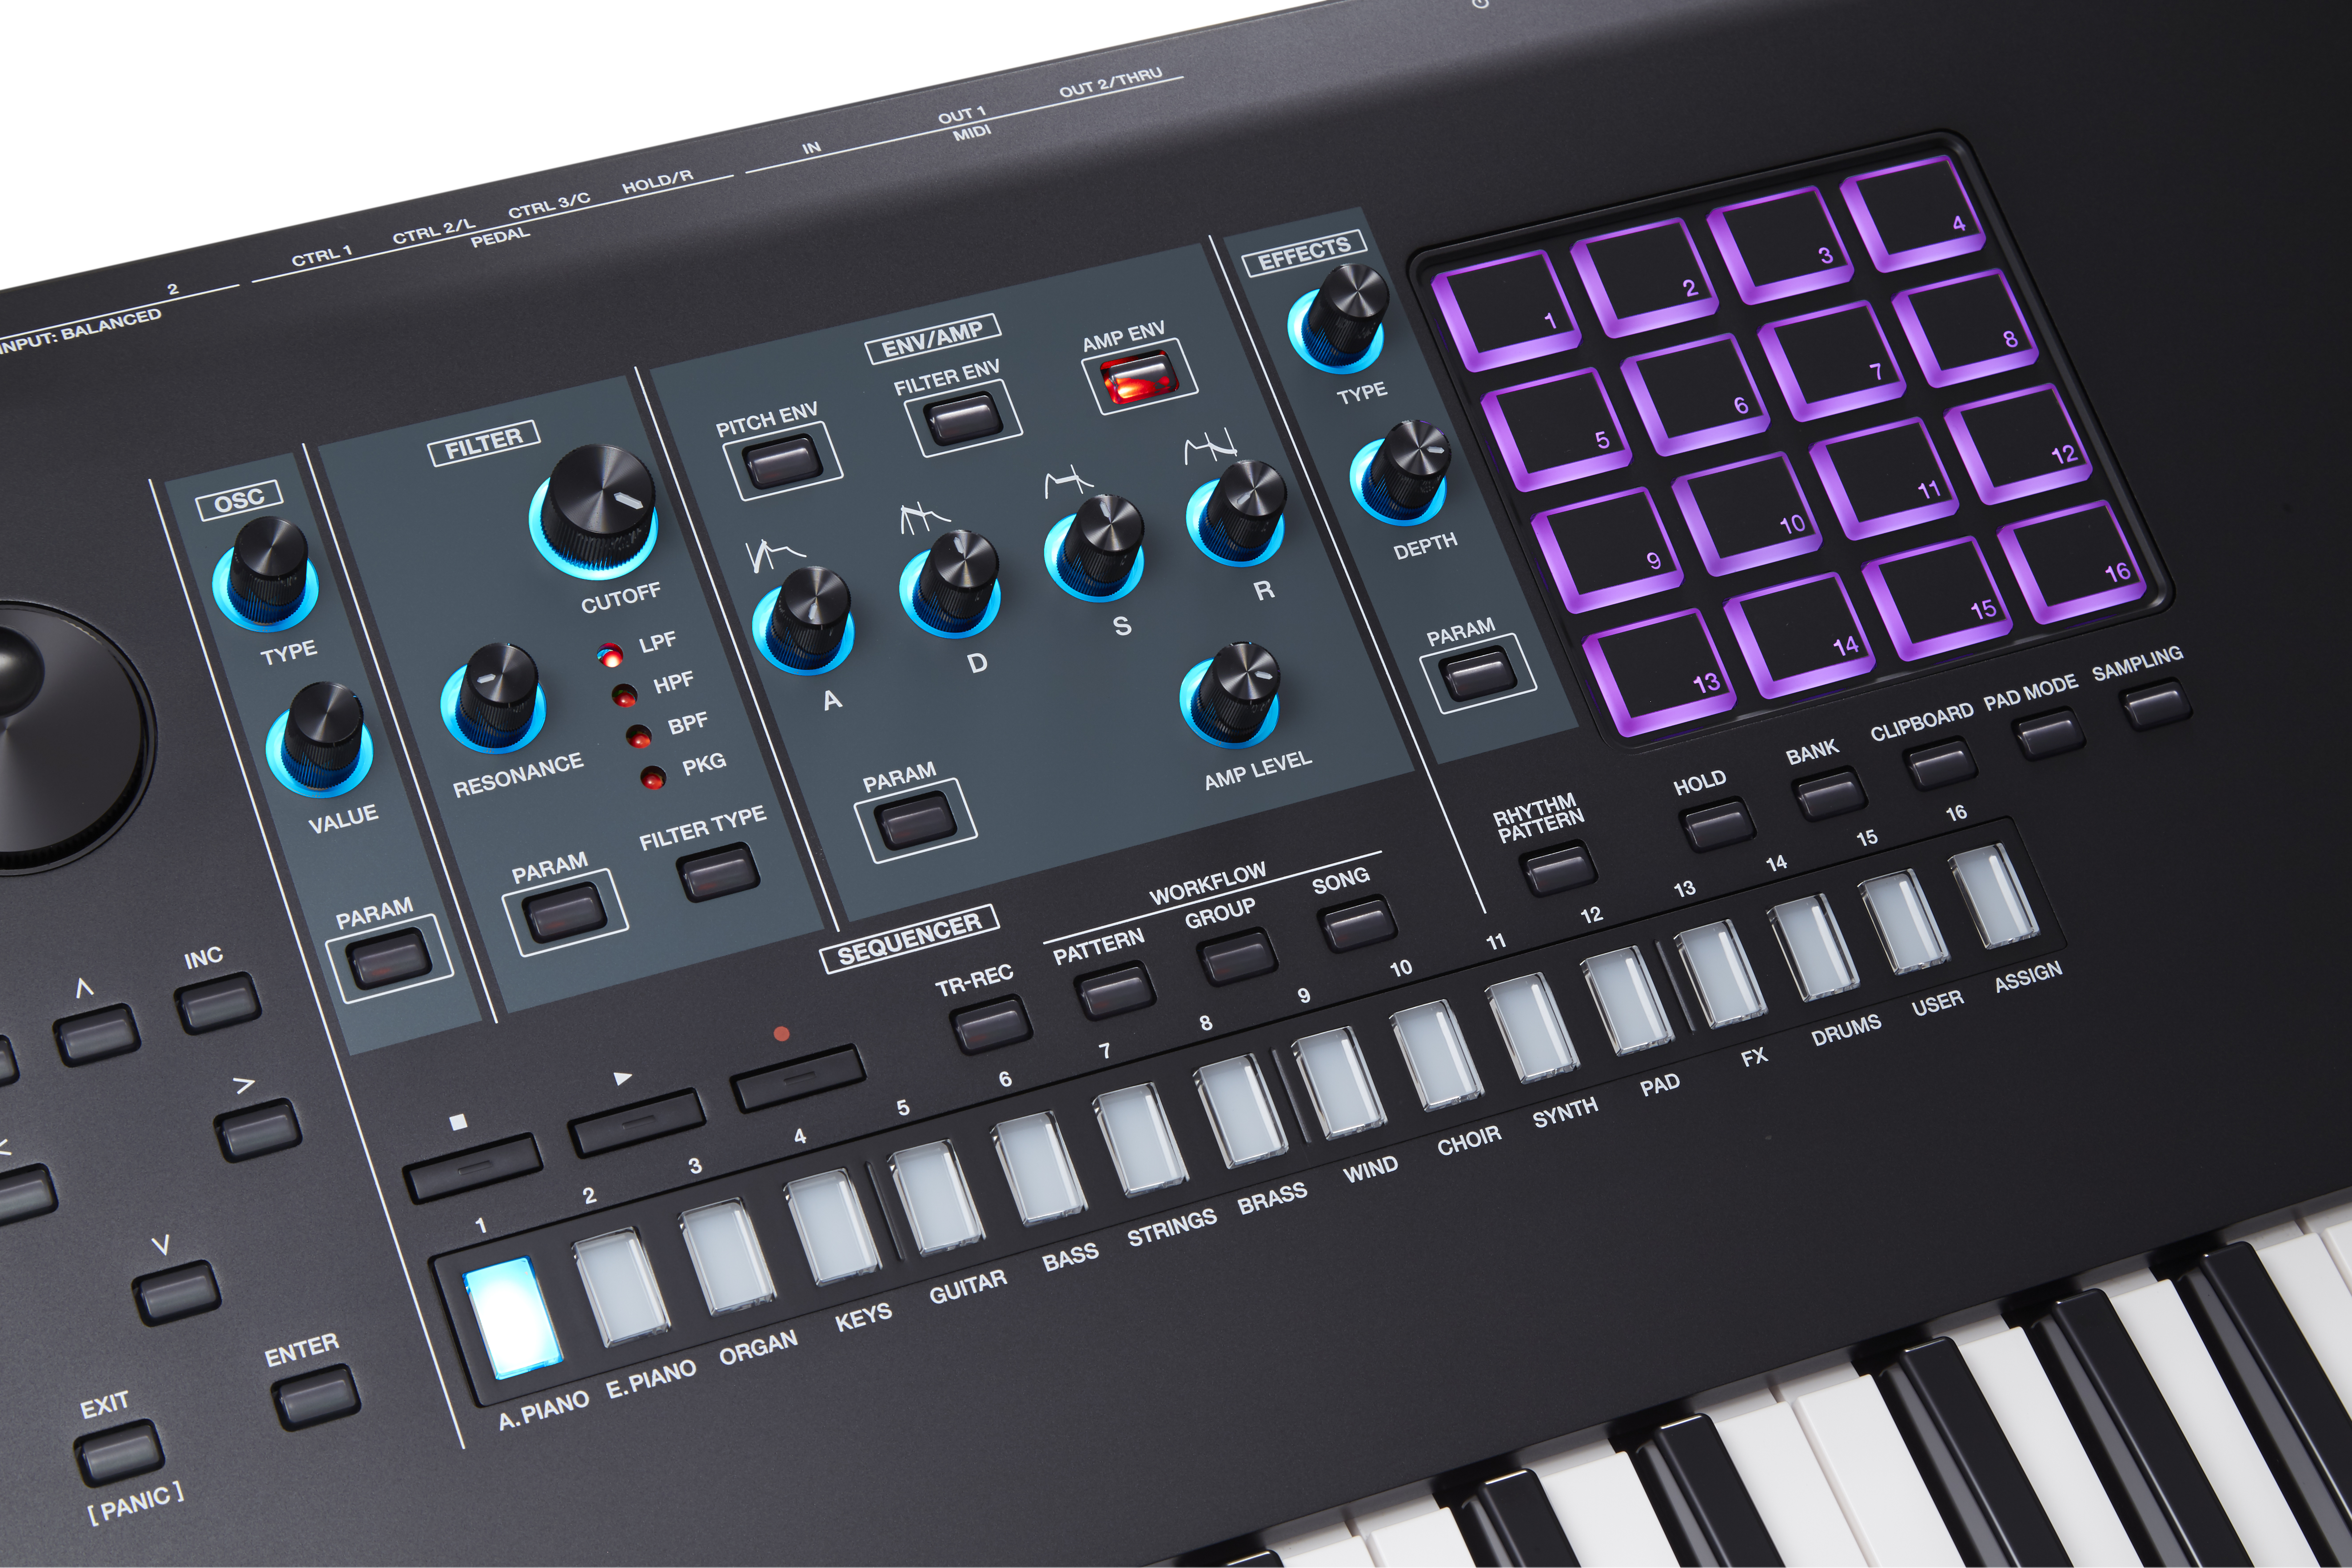 Roland FANTOM Flagship Keyboard Series Introduced With New